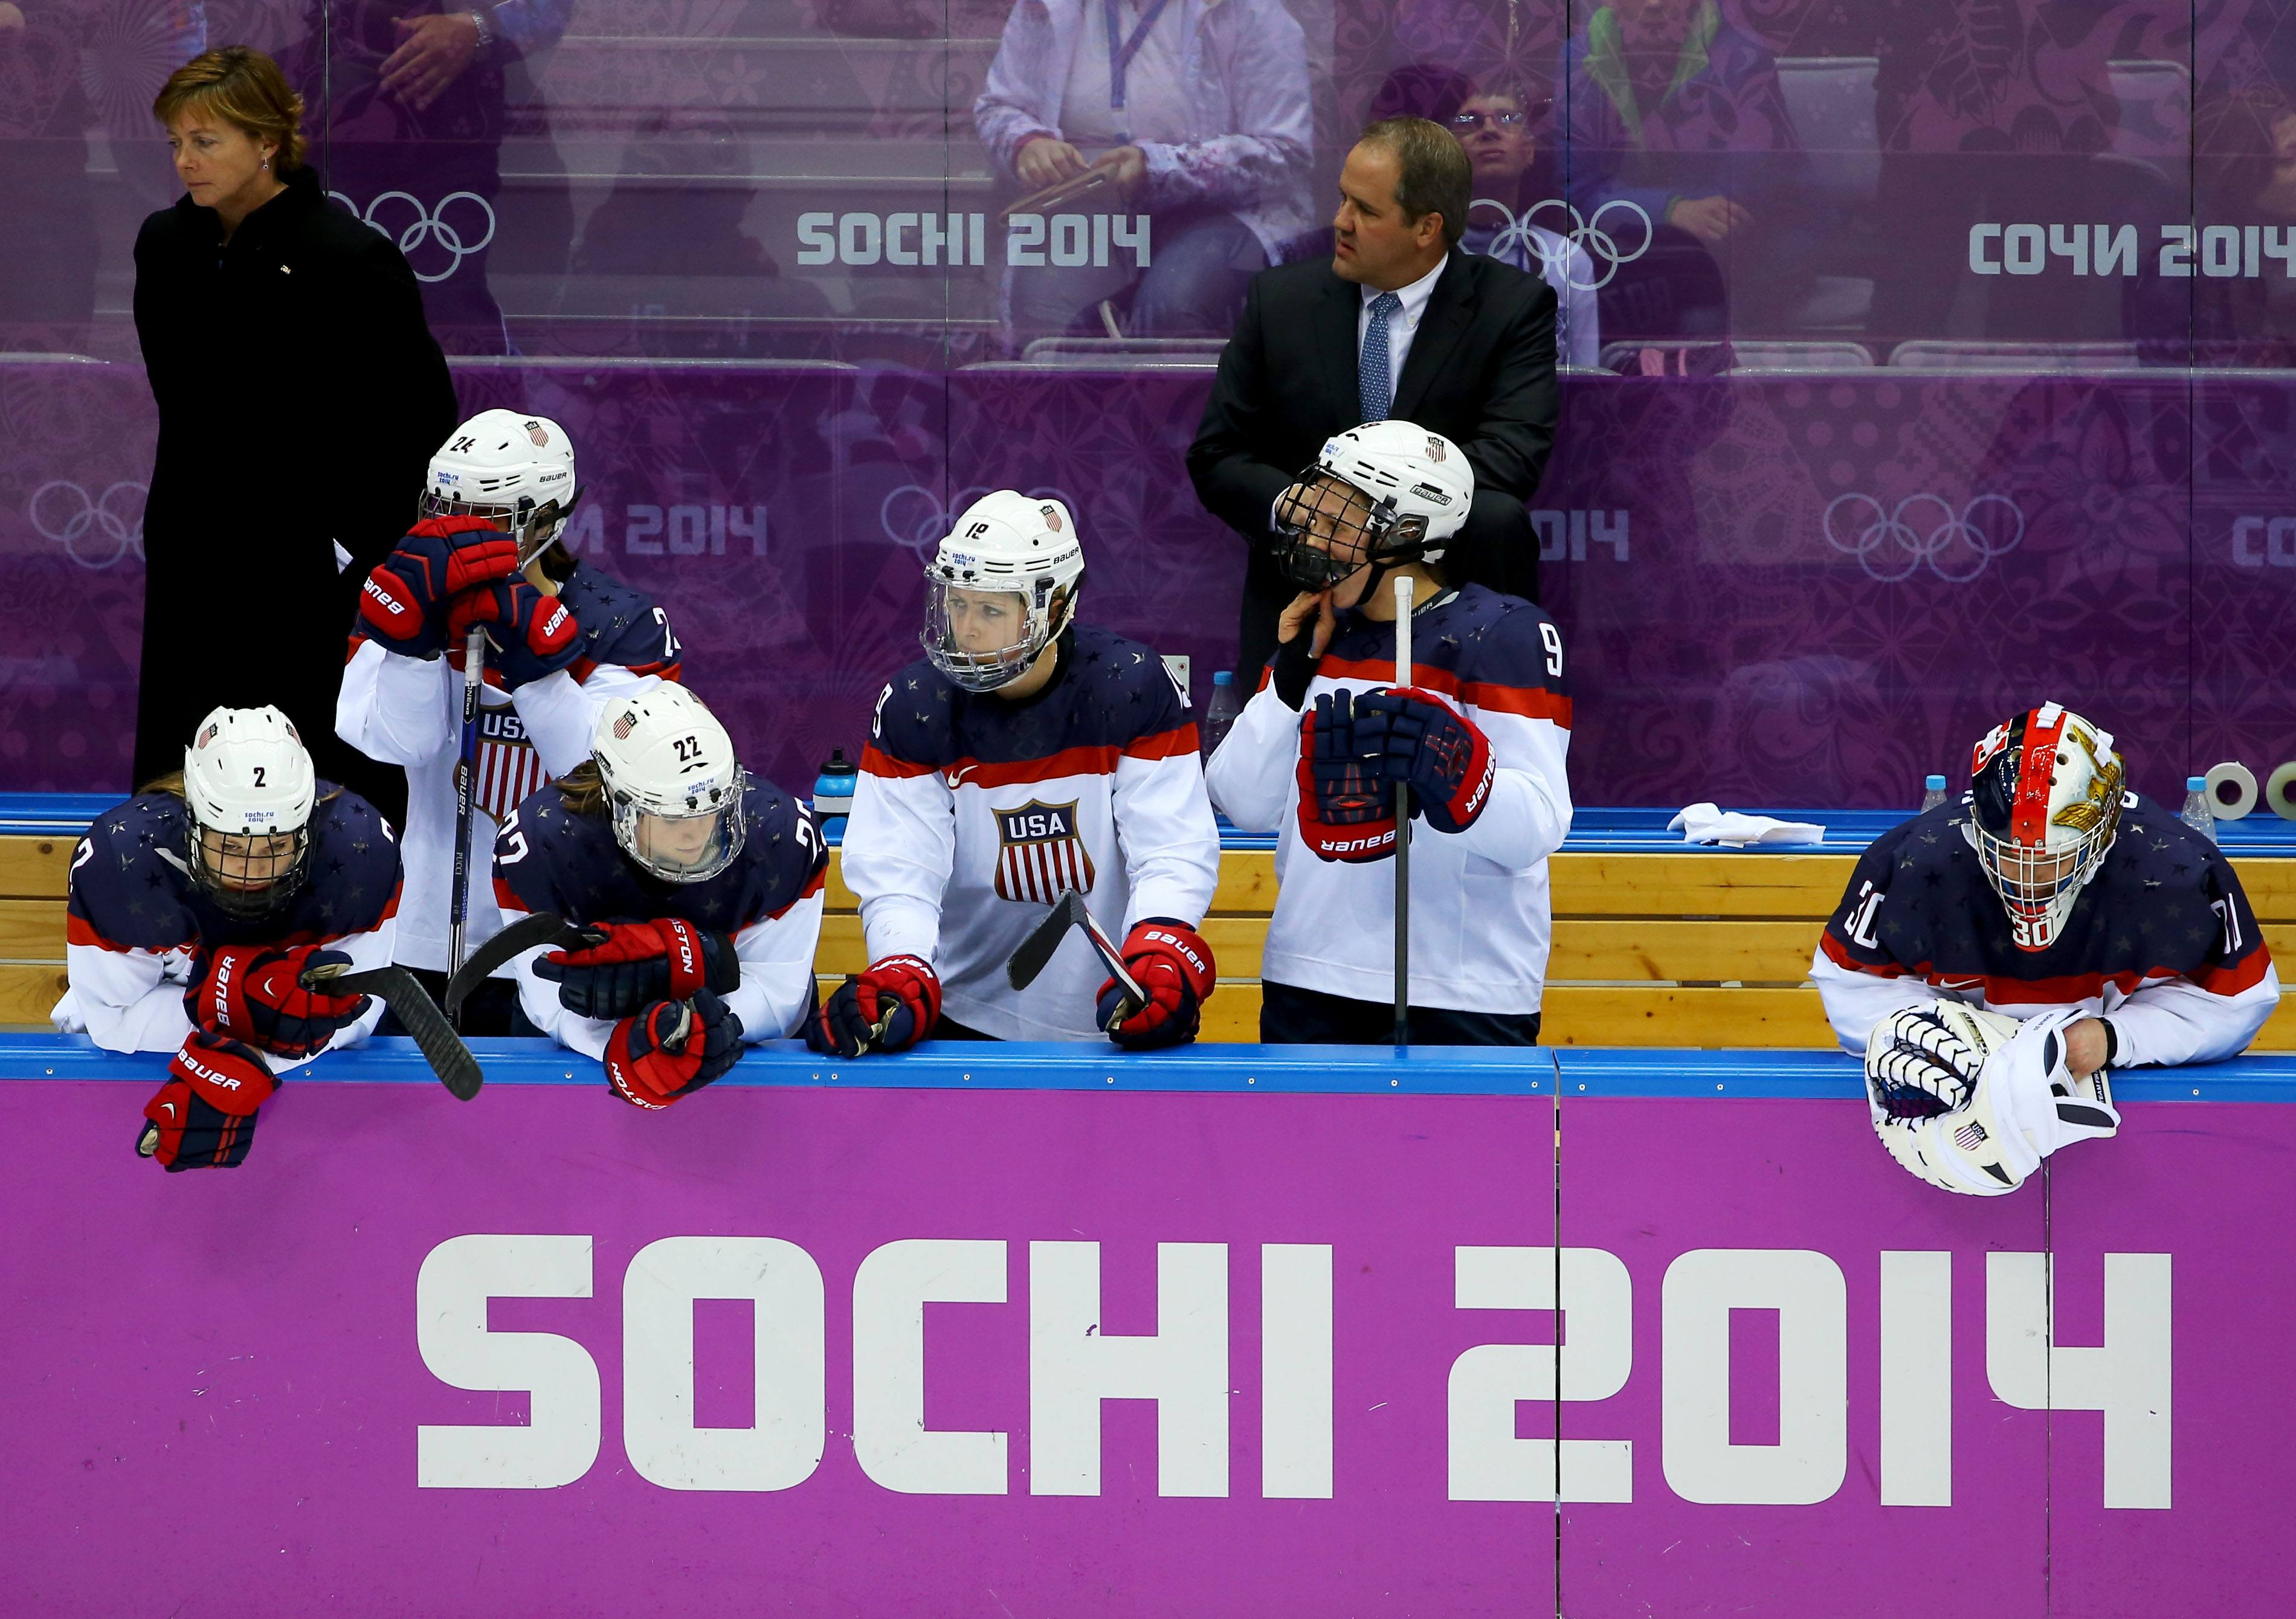 United States players look dejected as Canada win the gold medal during the Ice Hockey Women's Gold Medal Game on day 13 of the Sochi 2014 Winter Olympics at Bolshoy Ice Dome on February 20, 2014 in Sochi, Russia.